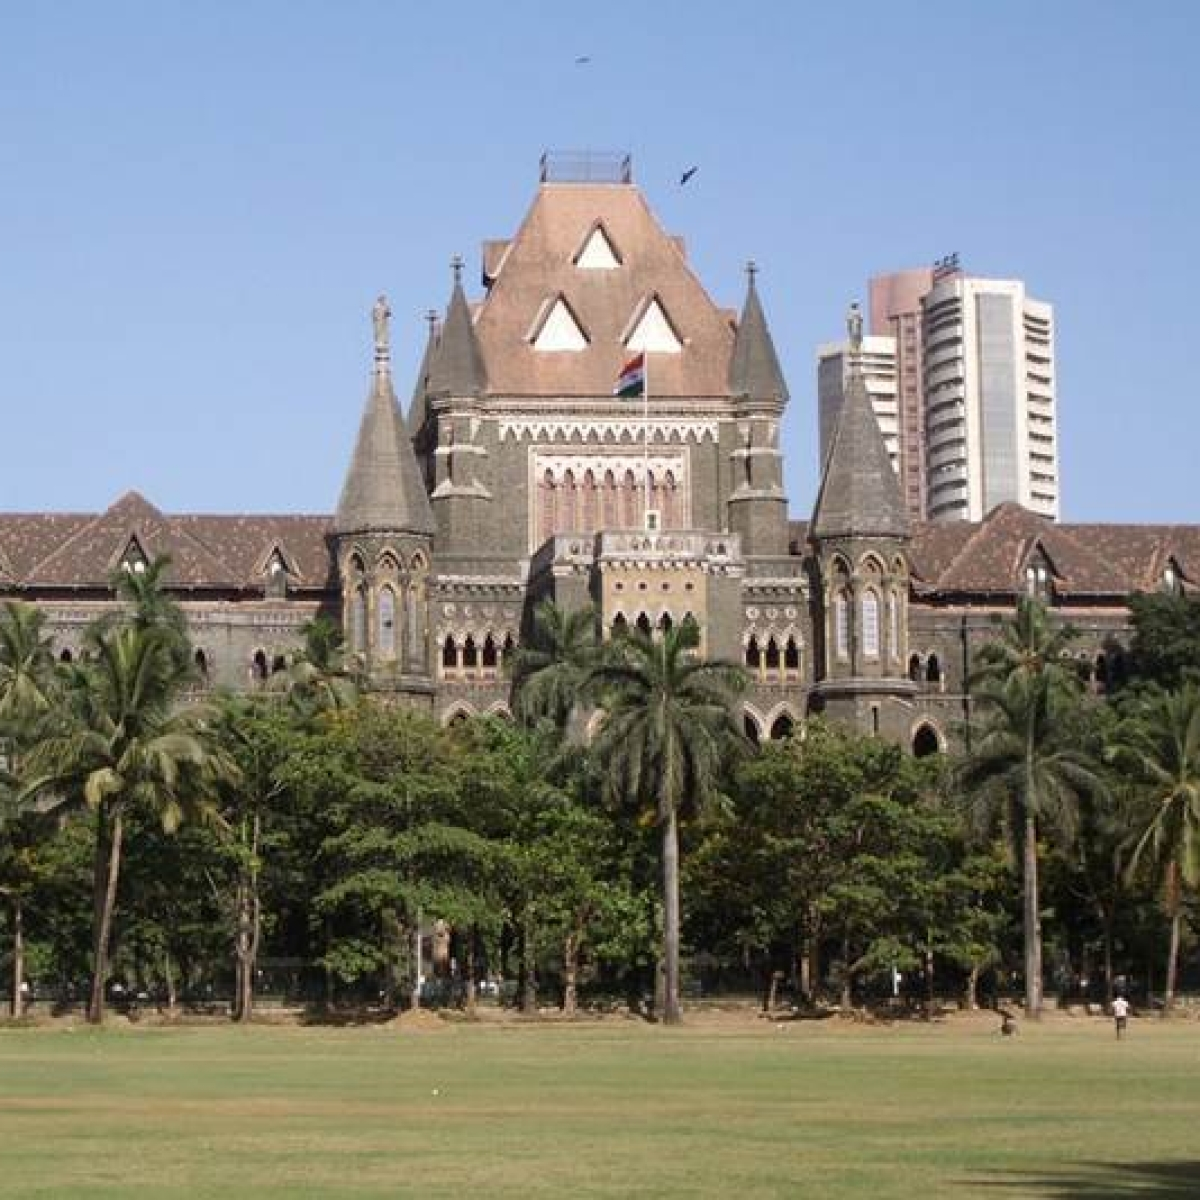 Bombay HC stays demolition, eviction & property auctions for now